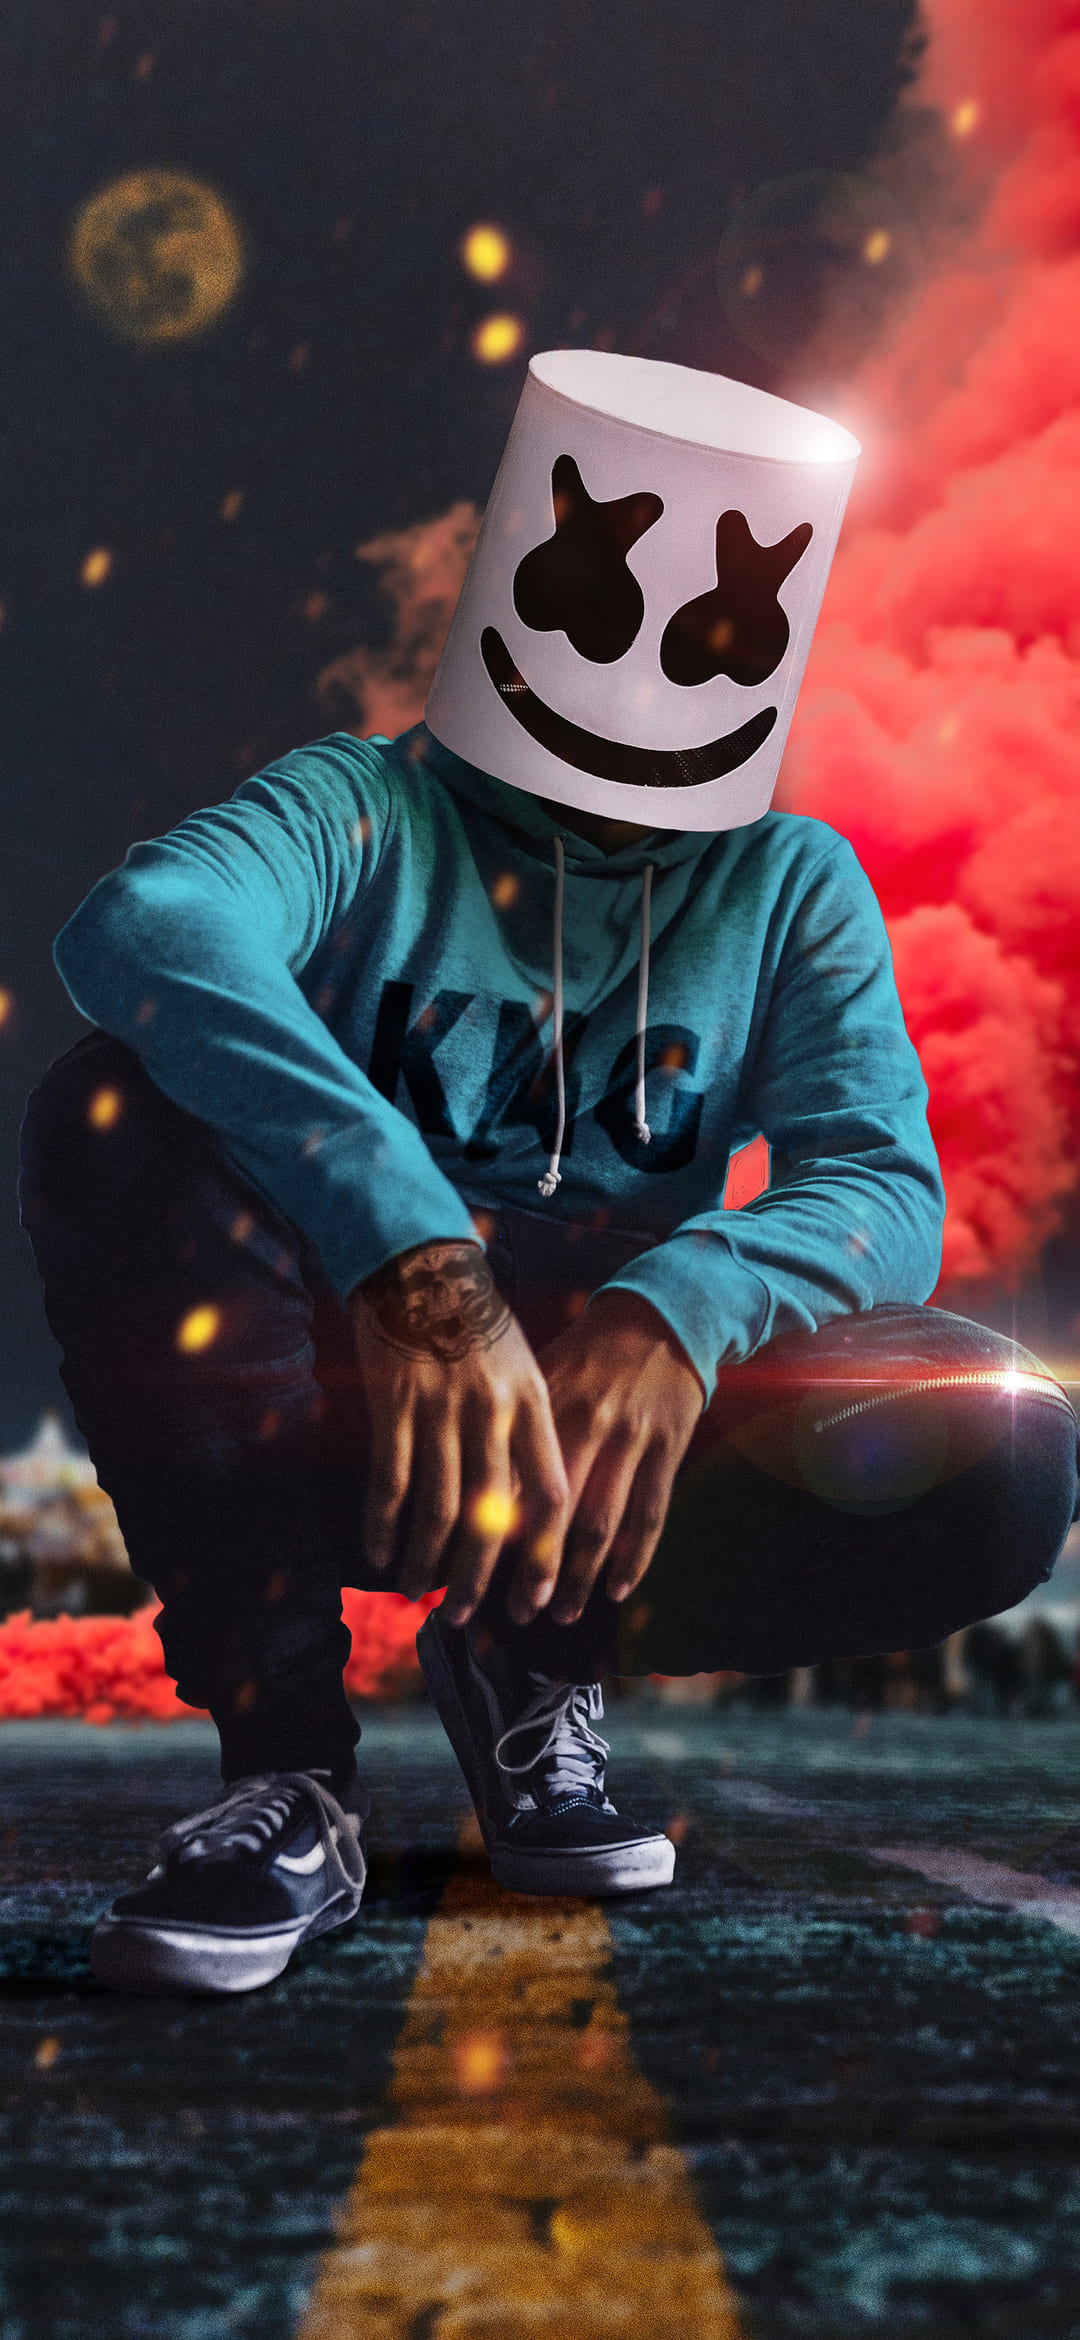 Marshmello 4k Wallpaper Full Hd Marshmello Hd 1080x2340 Download Hd Wallpaper Wallpapertip